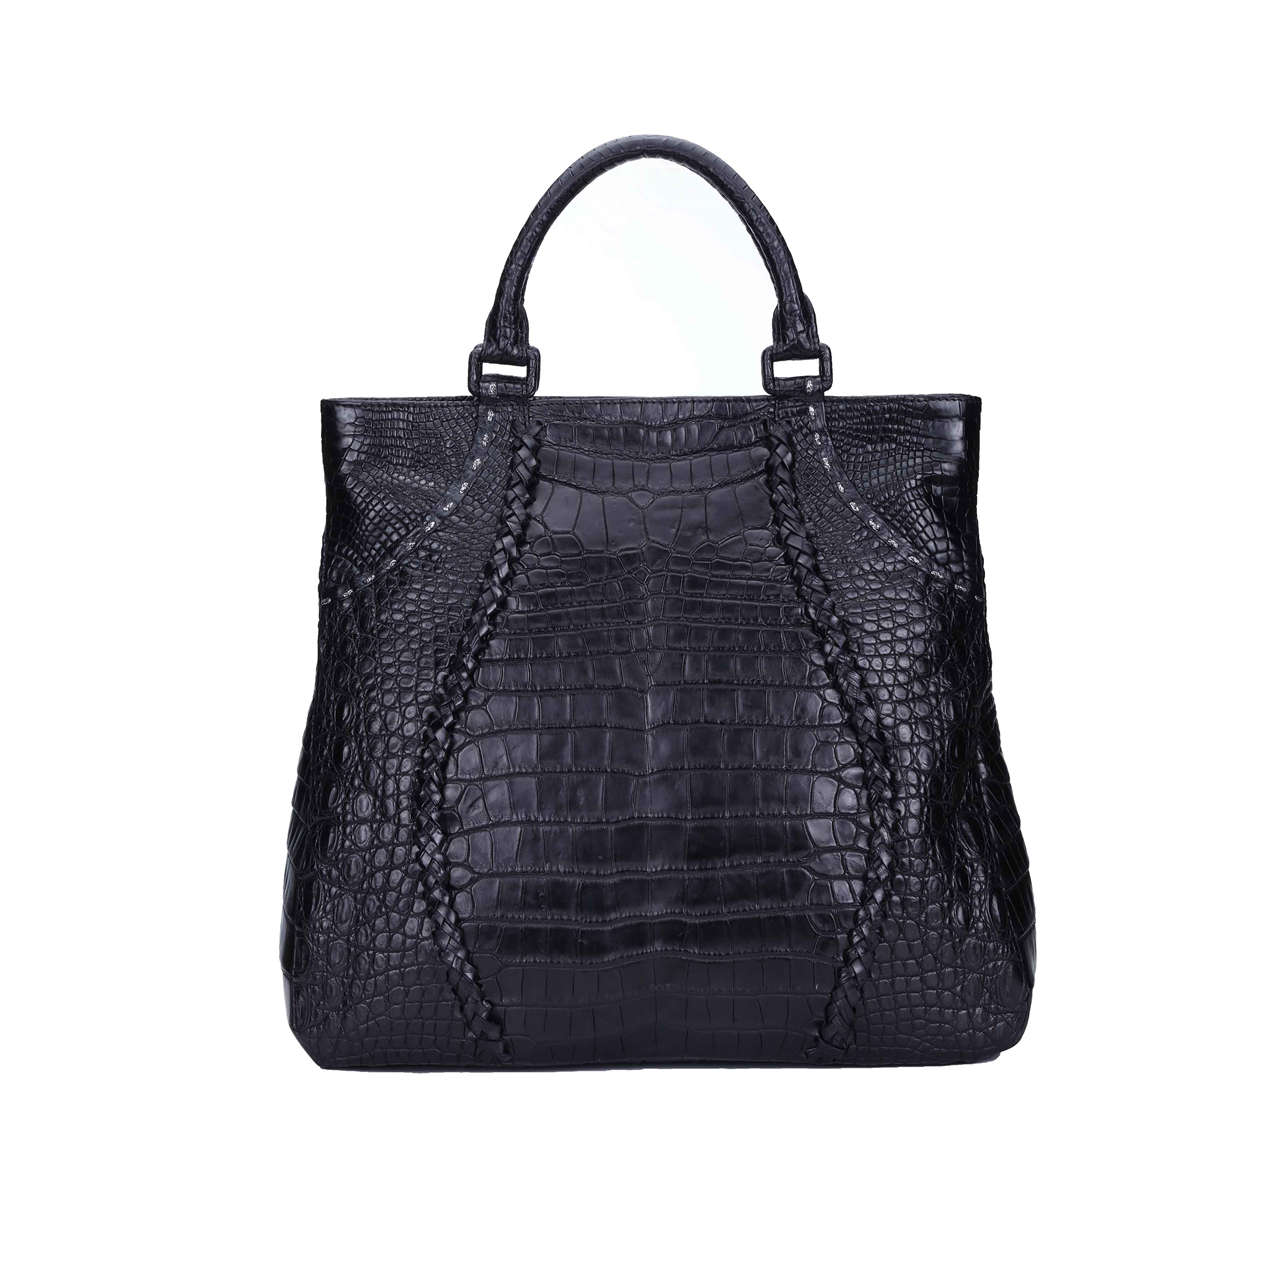 GF bags leather cover fashion handbags make for shopping-1